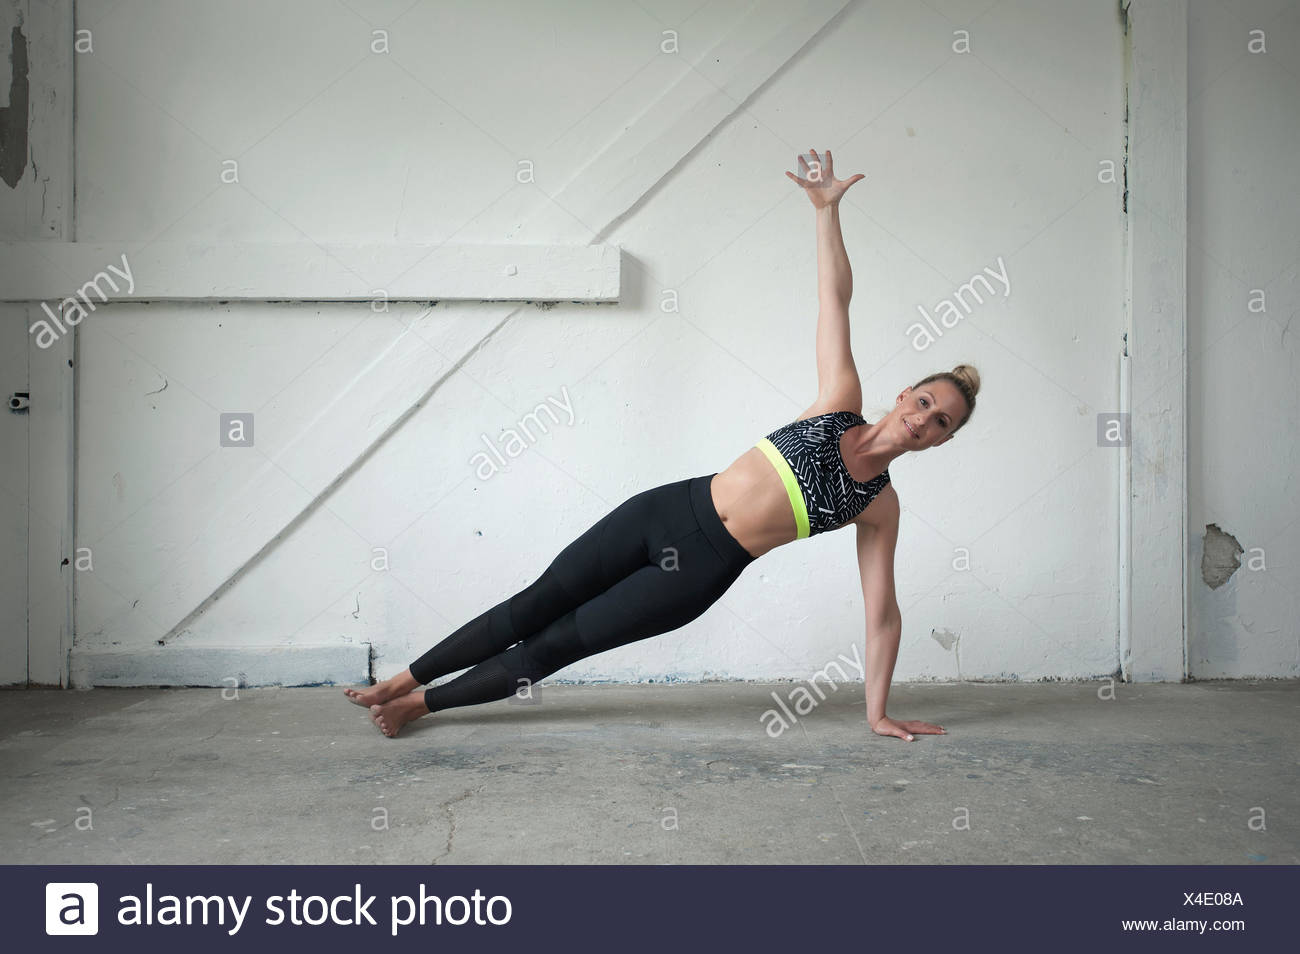 Mid adult woman practicing side plank pose in yoga studio, Munich, Bavaria, Germany - Stock Image